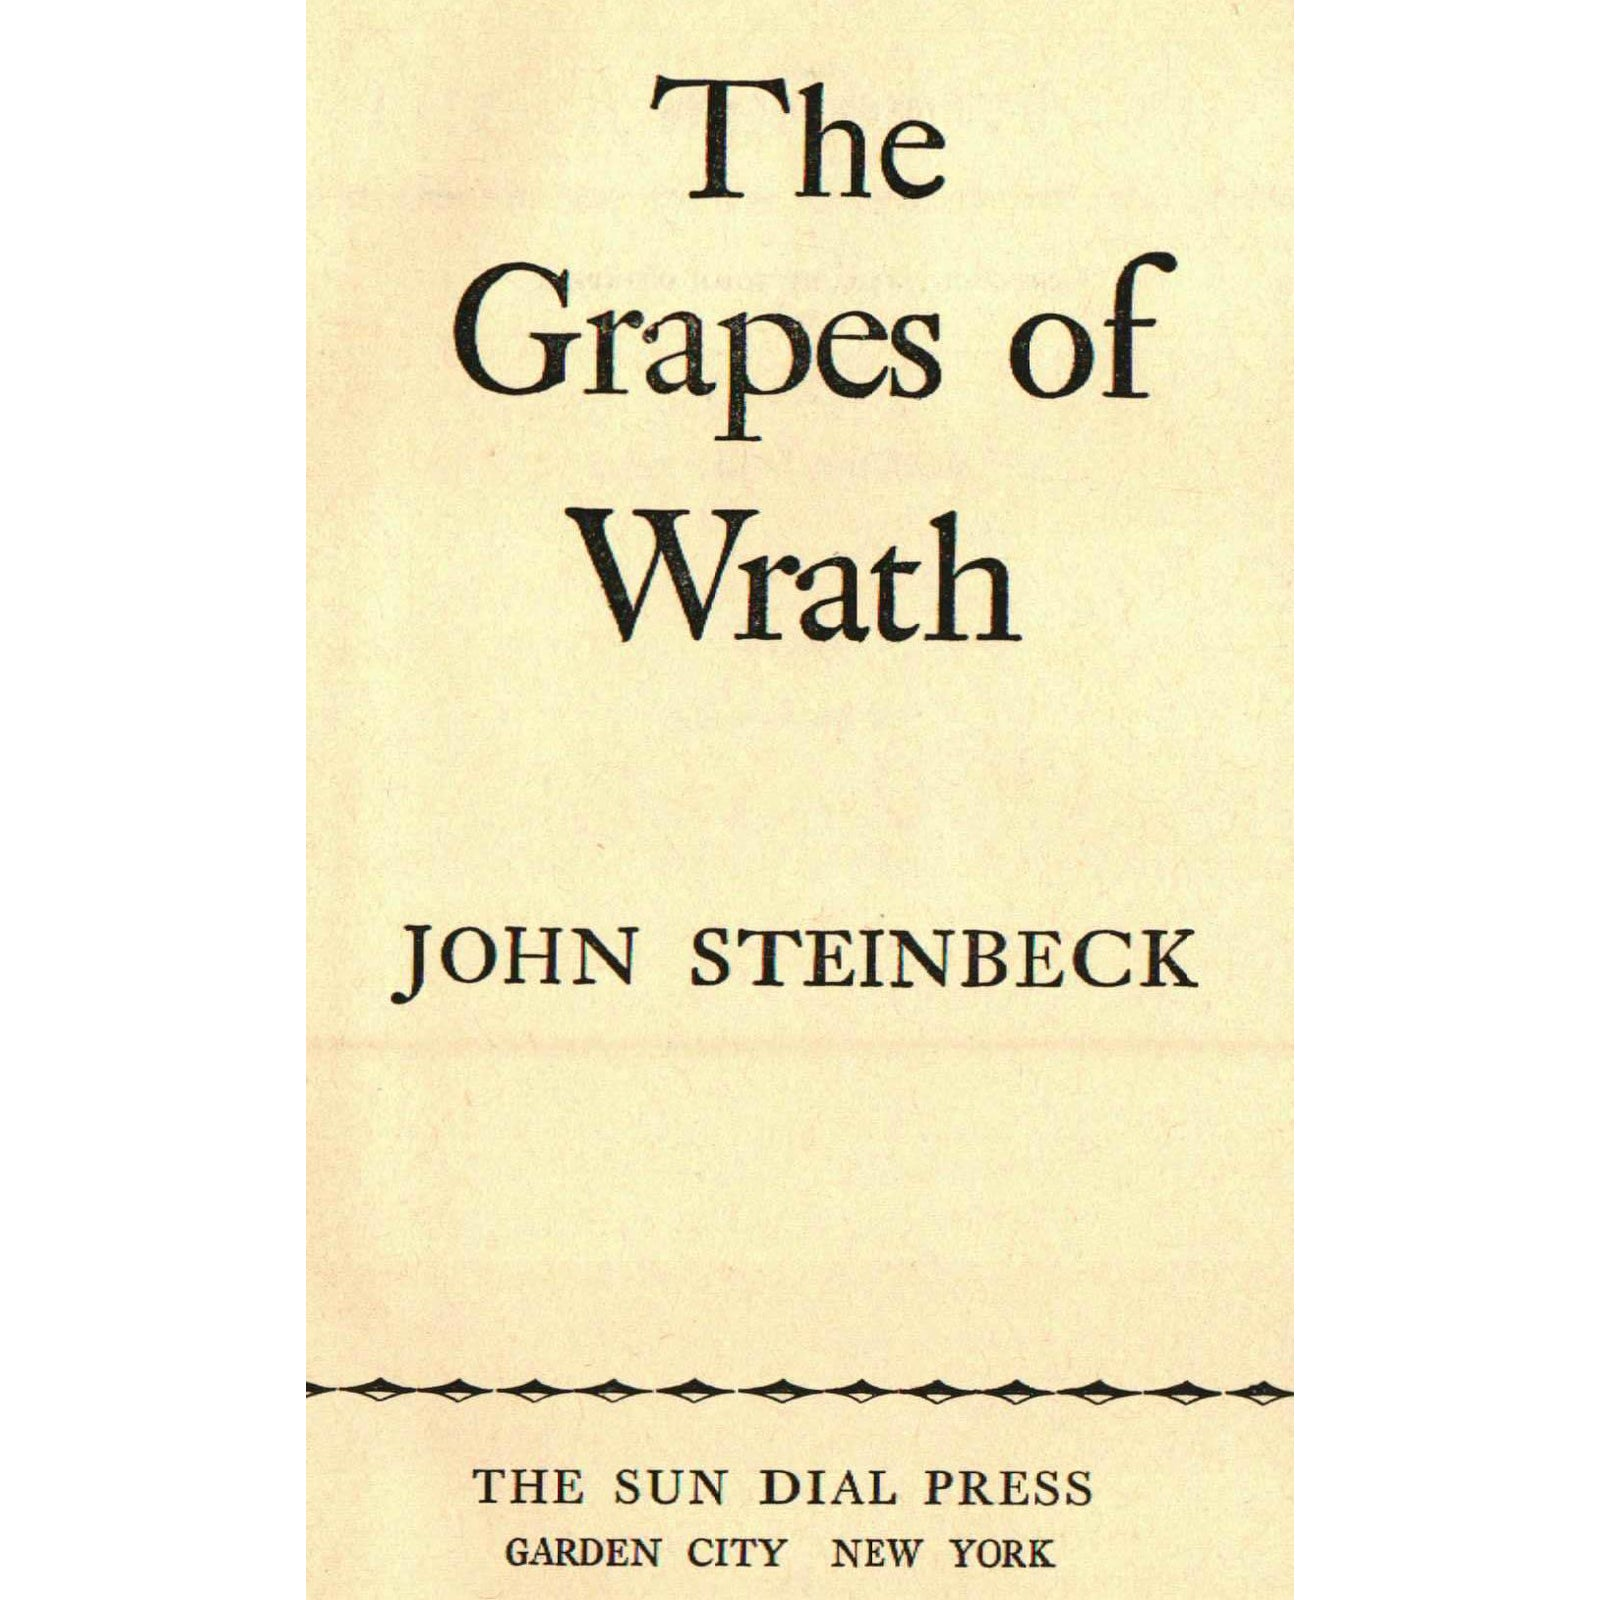 an analysis of bold dramatization in the grapes of wrath by john steinbeck The grapes of wrath can be divided into three specific sections: the drought and preparation to leave the farm, the journey to california, and the arrival in california the juxtaposition of two chapters of general observation marks the respective end and beginning of these first two sections.